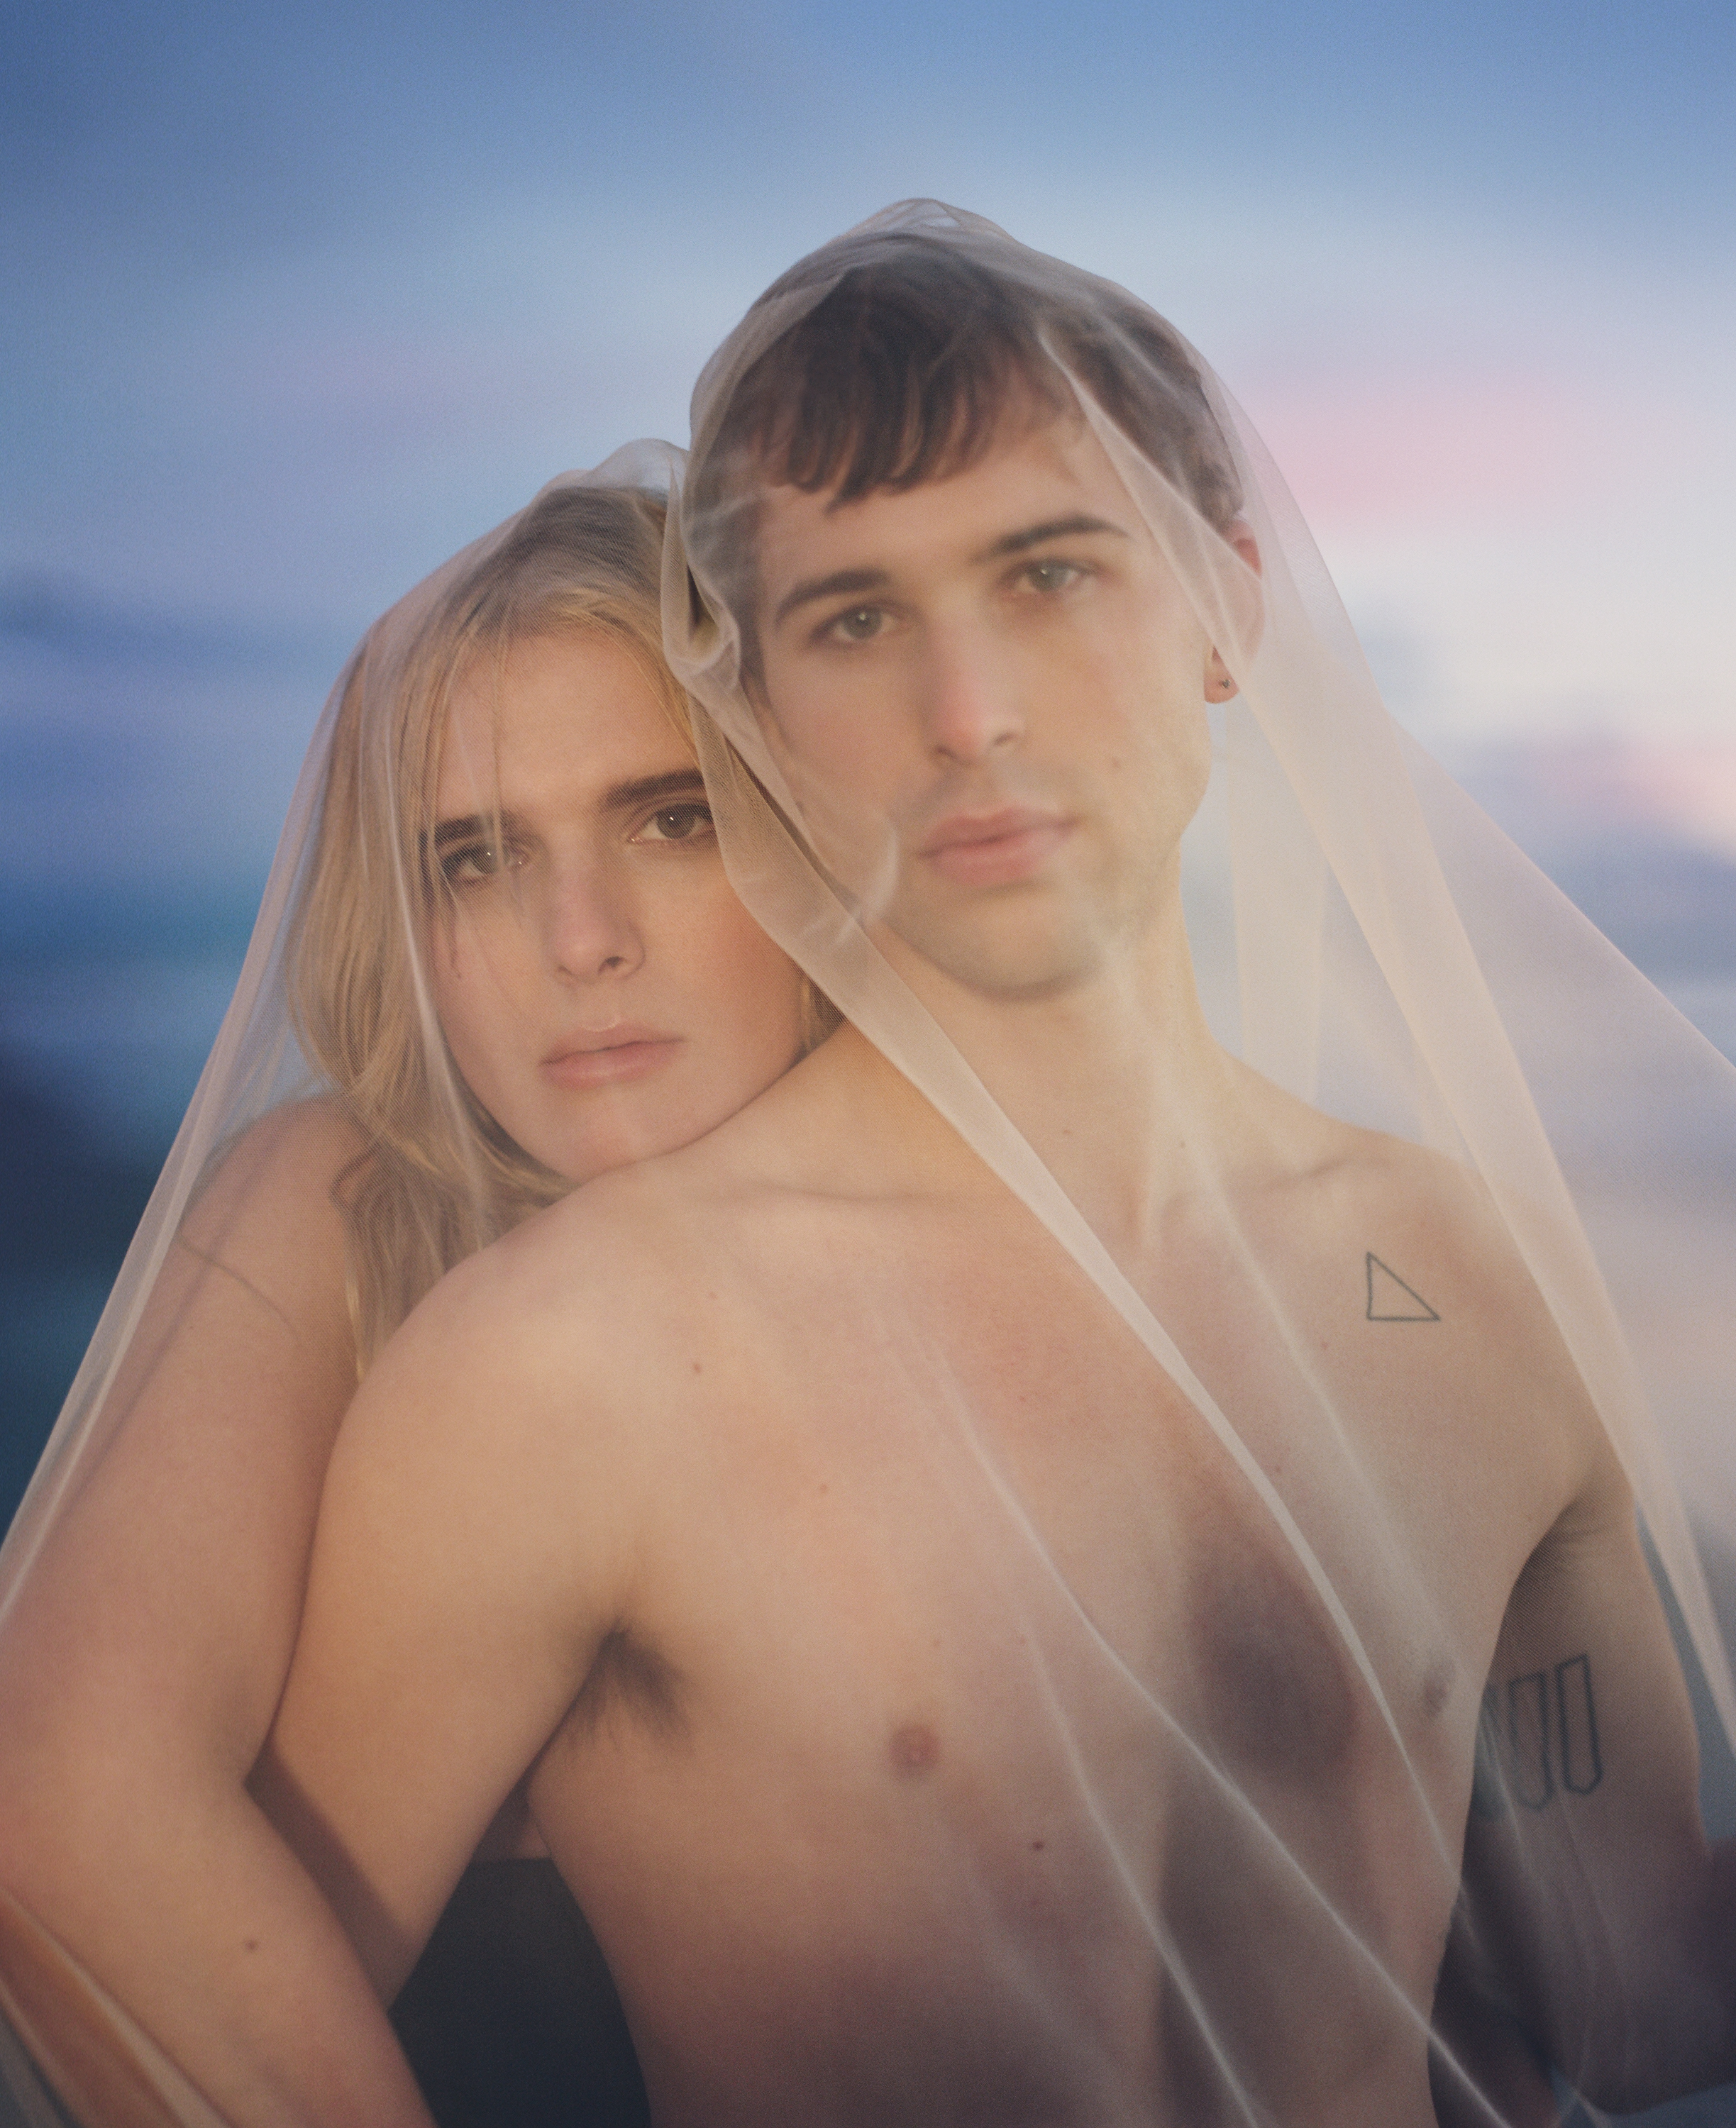 Hari Nef & Tommy Dorfman, OUT magazine cover, 2019